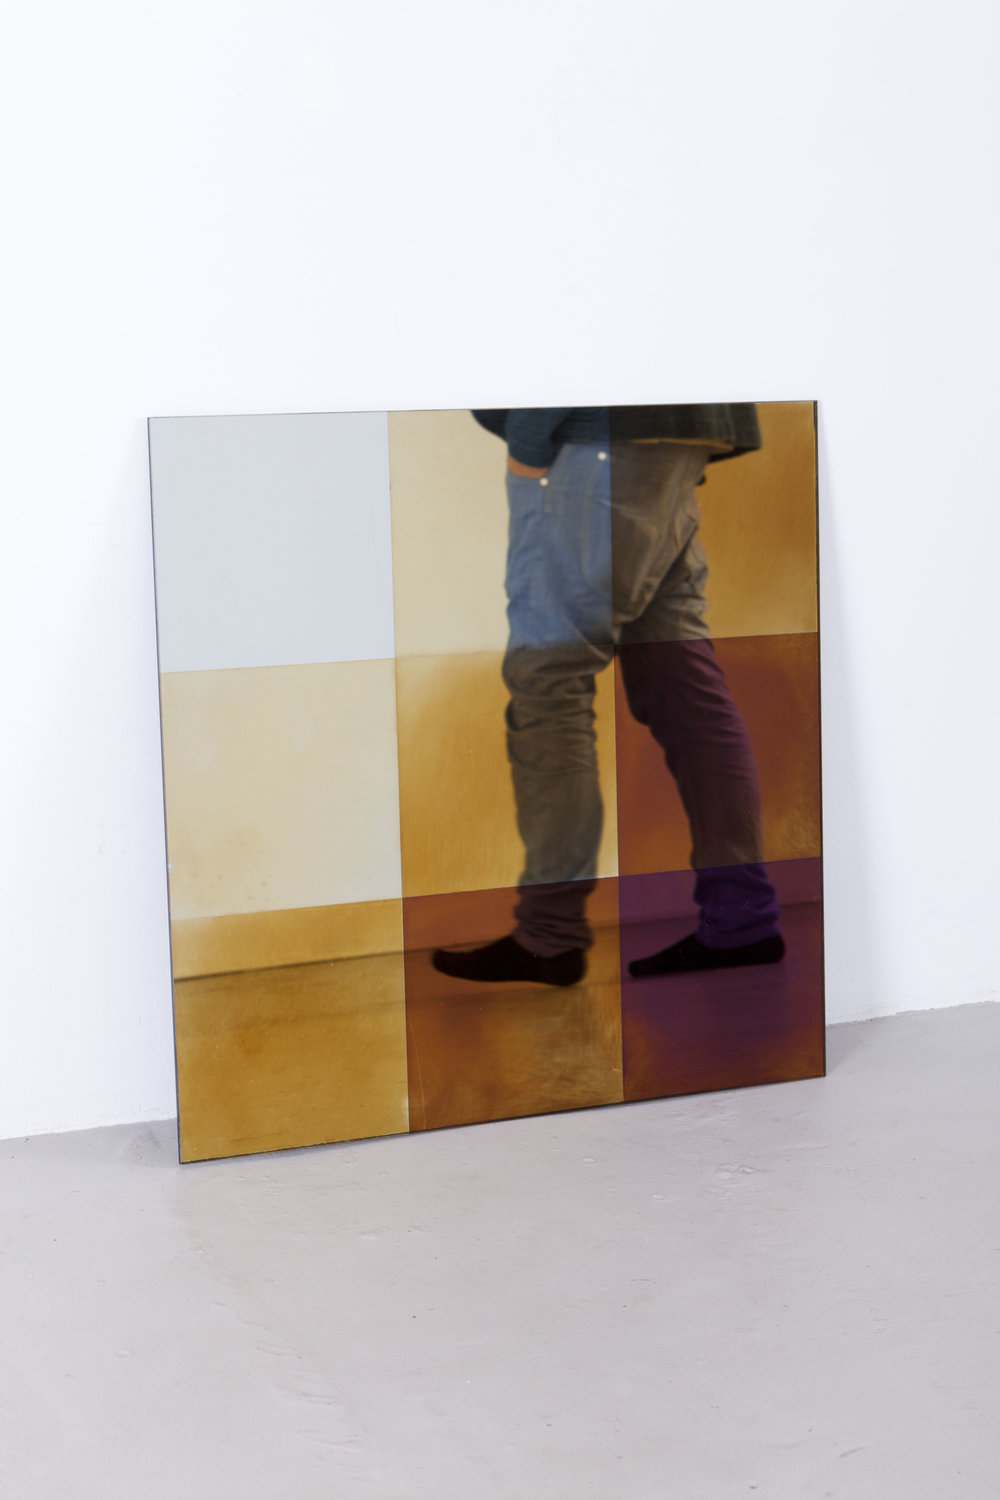 transnatural_Transience_mirror_square+feet_byfloorknaapen_27.jpg